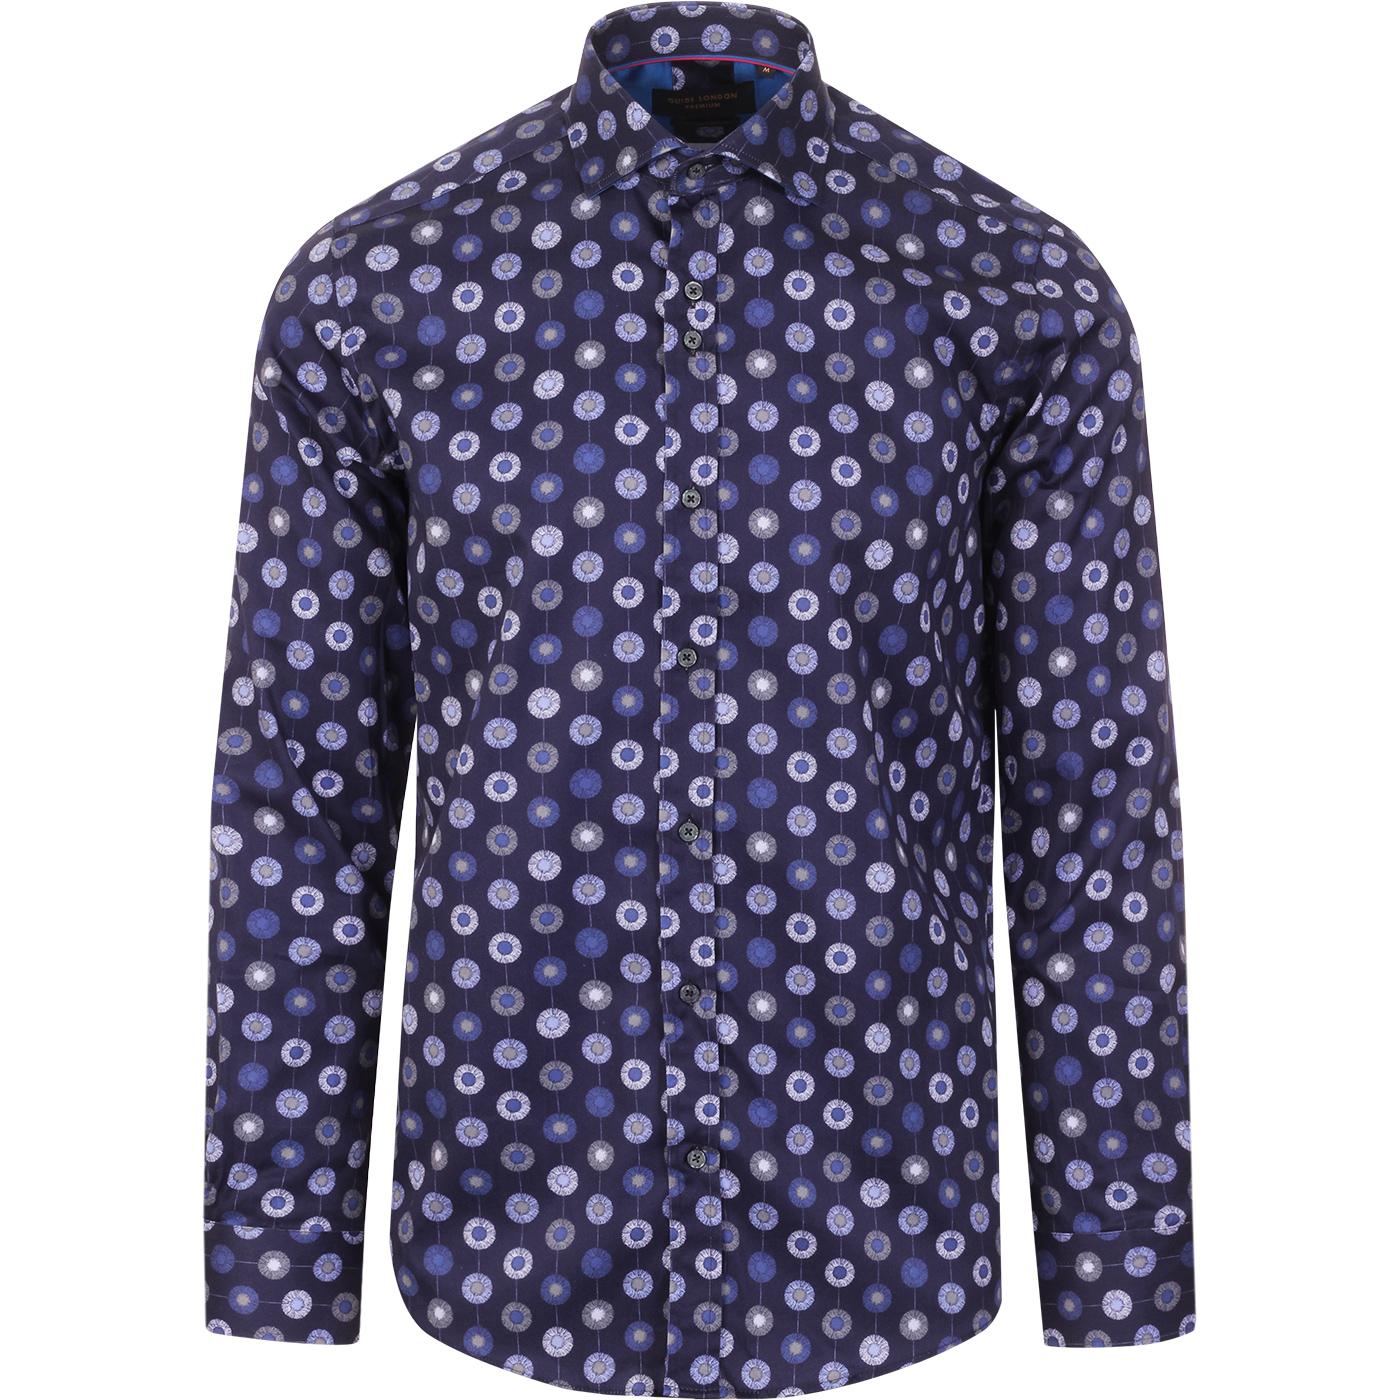 GUIDE LONDON Retro Painted Pinstripe Floral Shirt